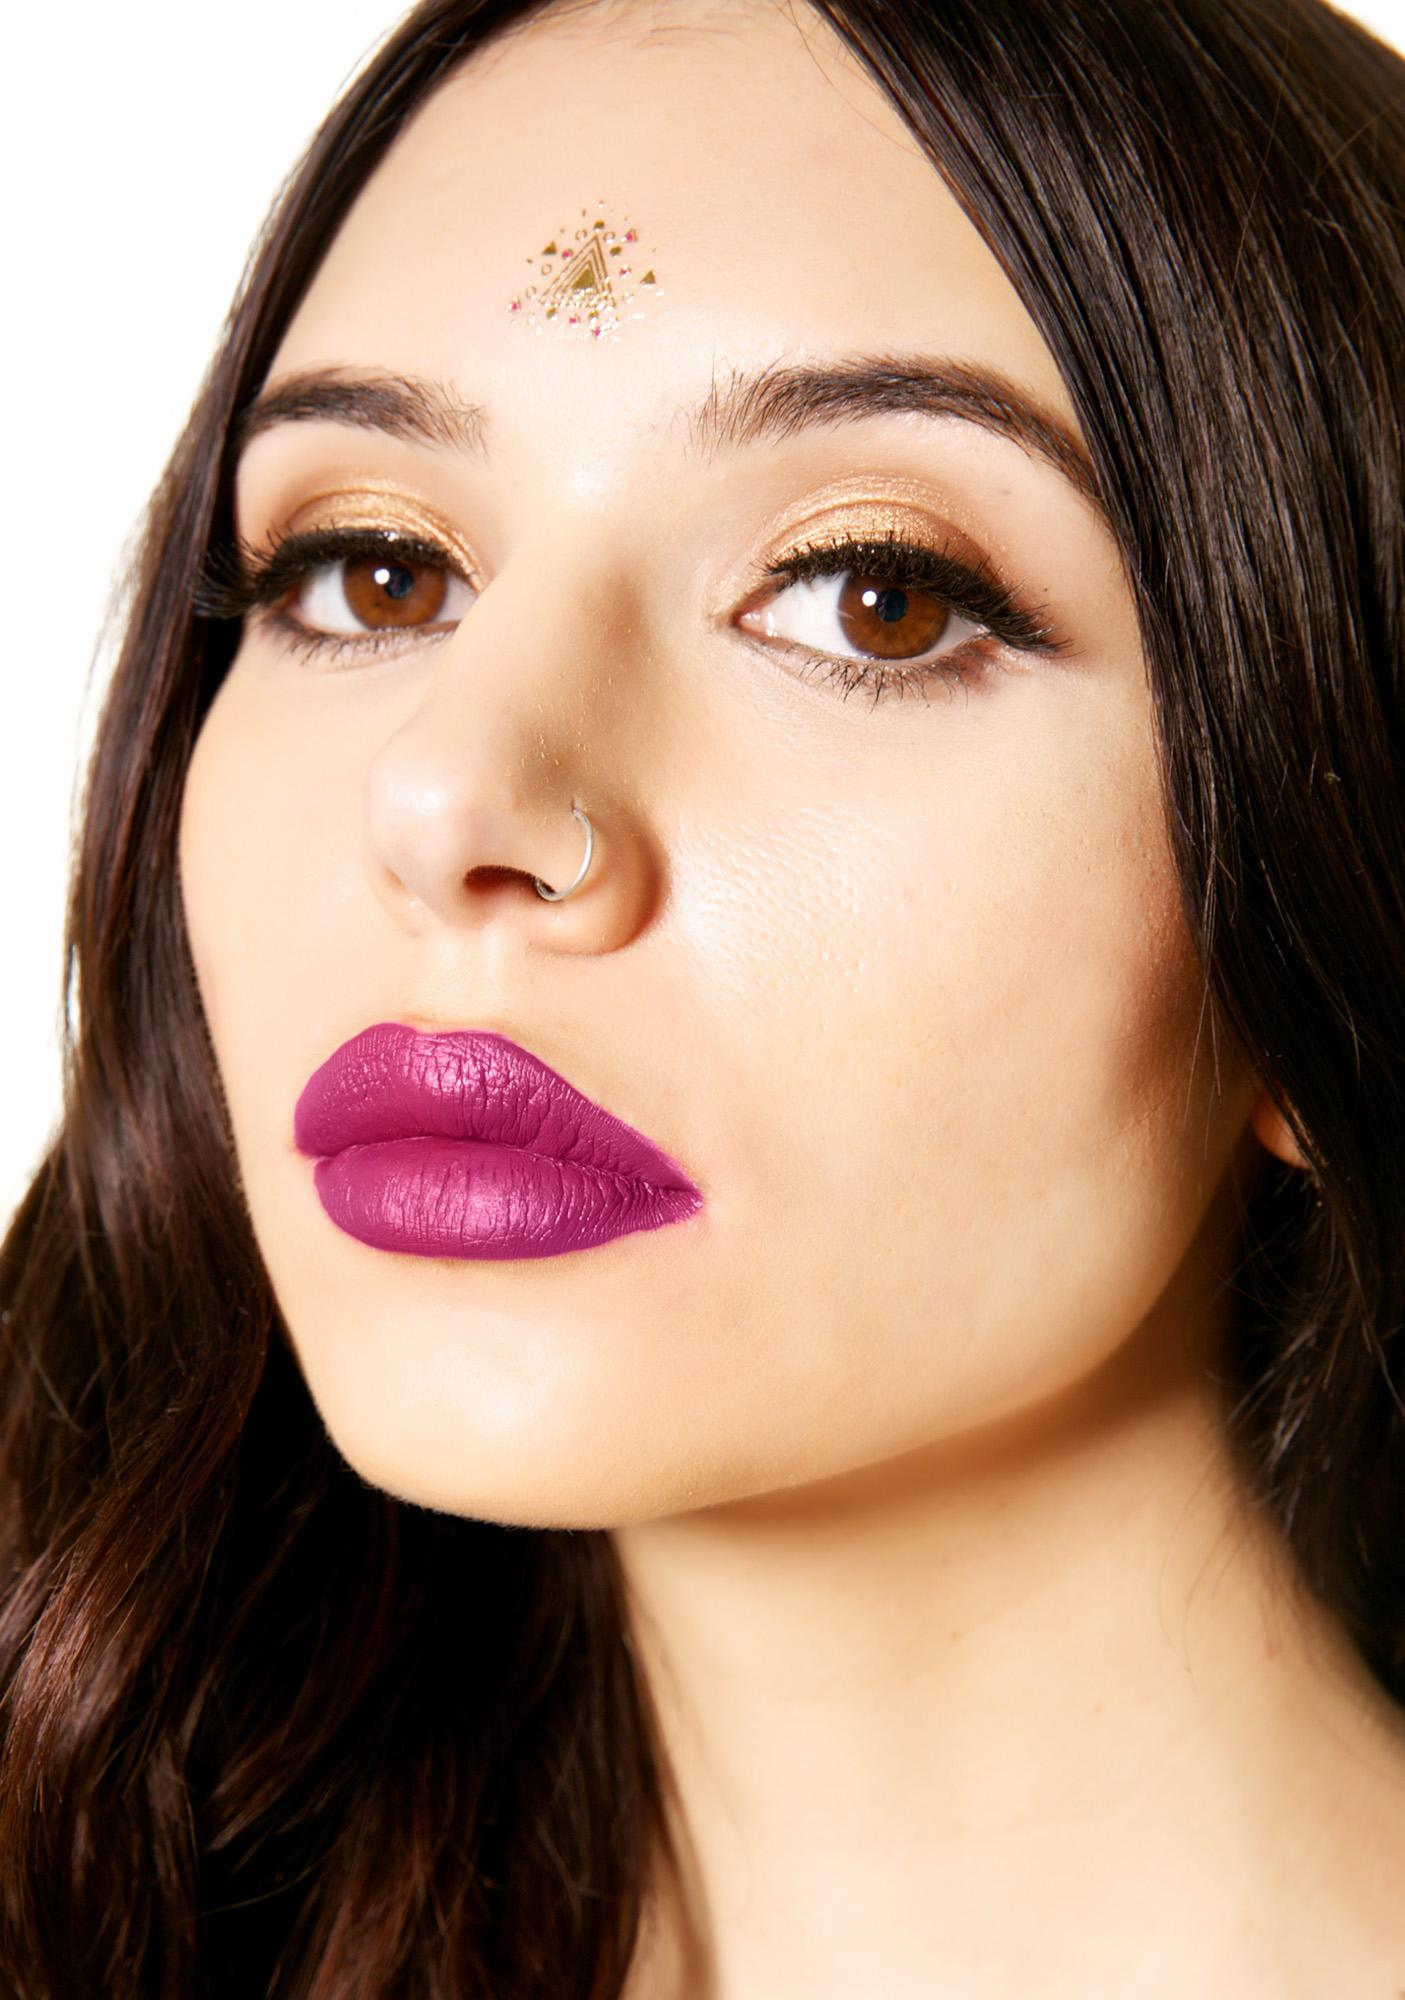 Lime Crime Beet It Velvetine Liquid Lipstick